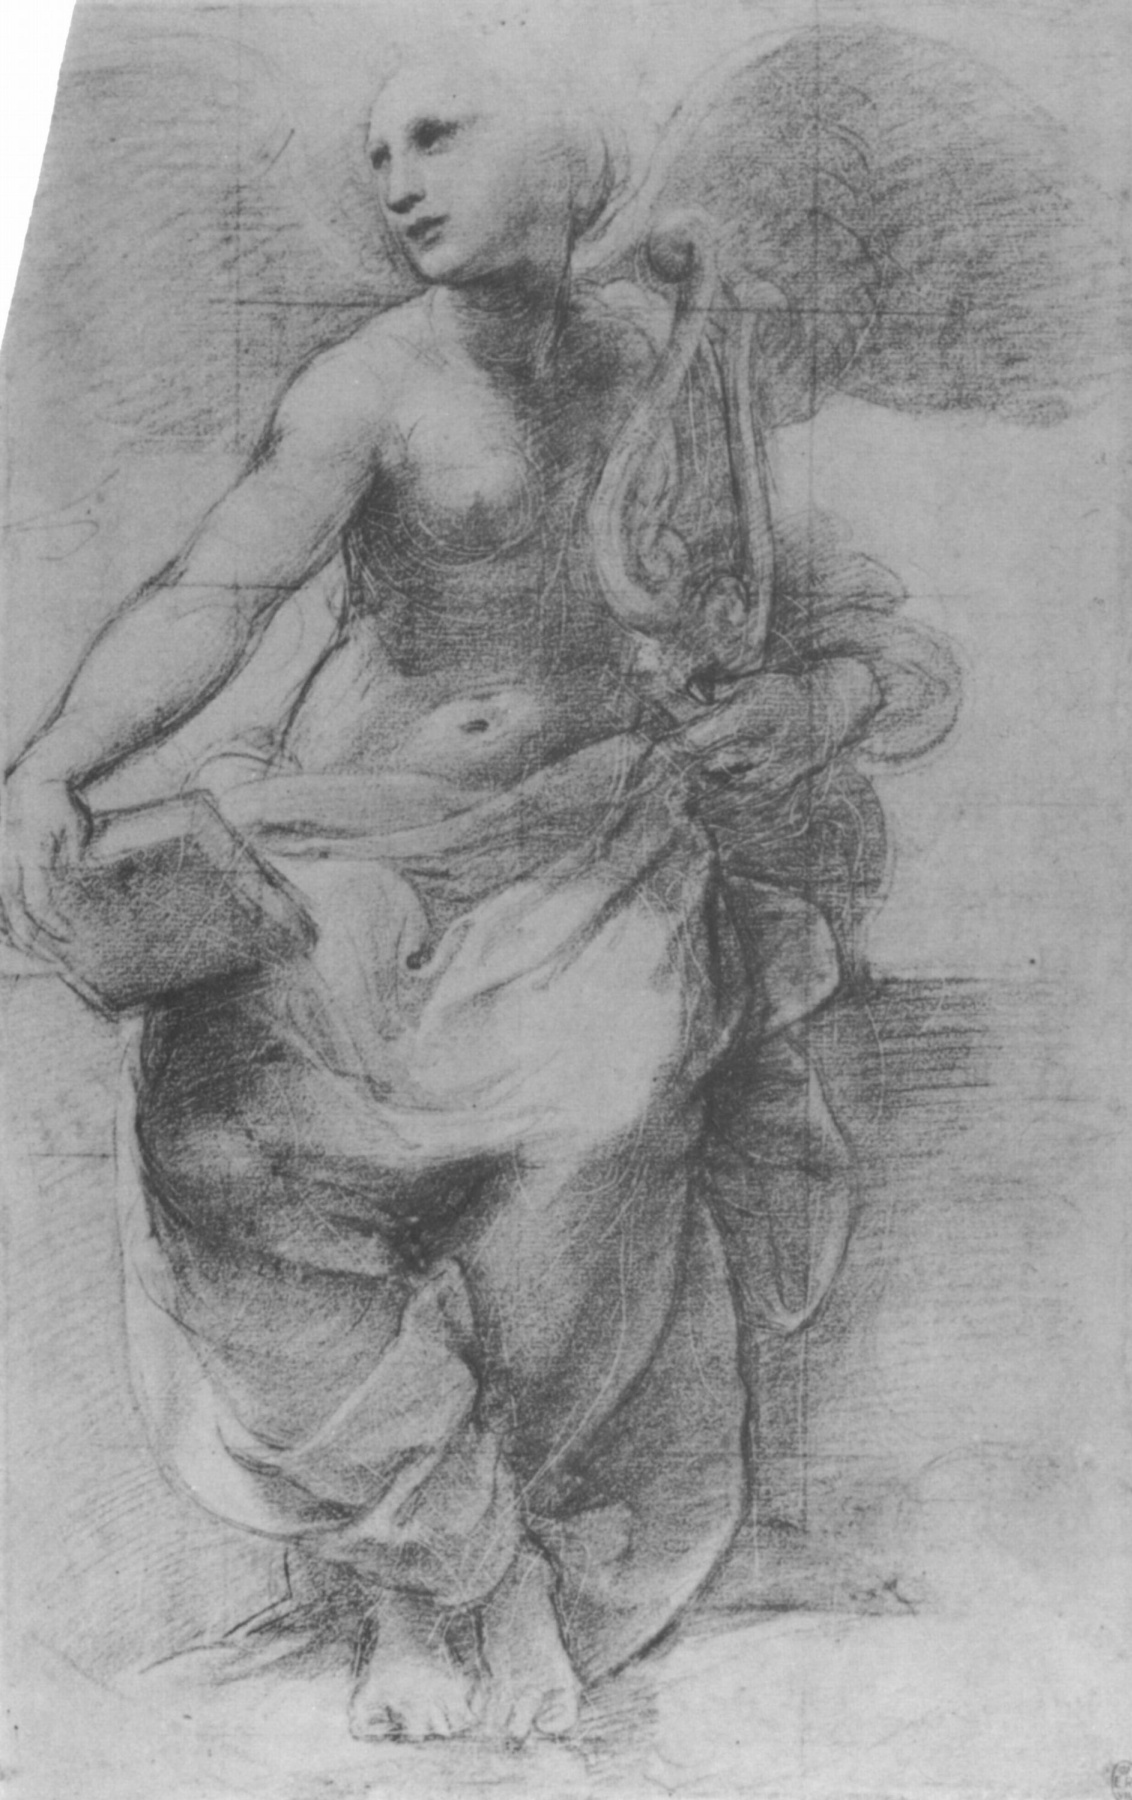 Raphael Sanzio. Allegory Of Poetry. A sketch of the frescoes of the Palace of the Pope in the Vatican